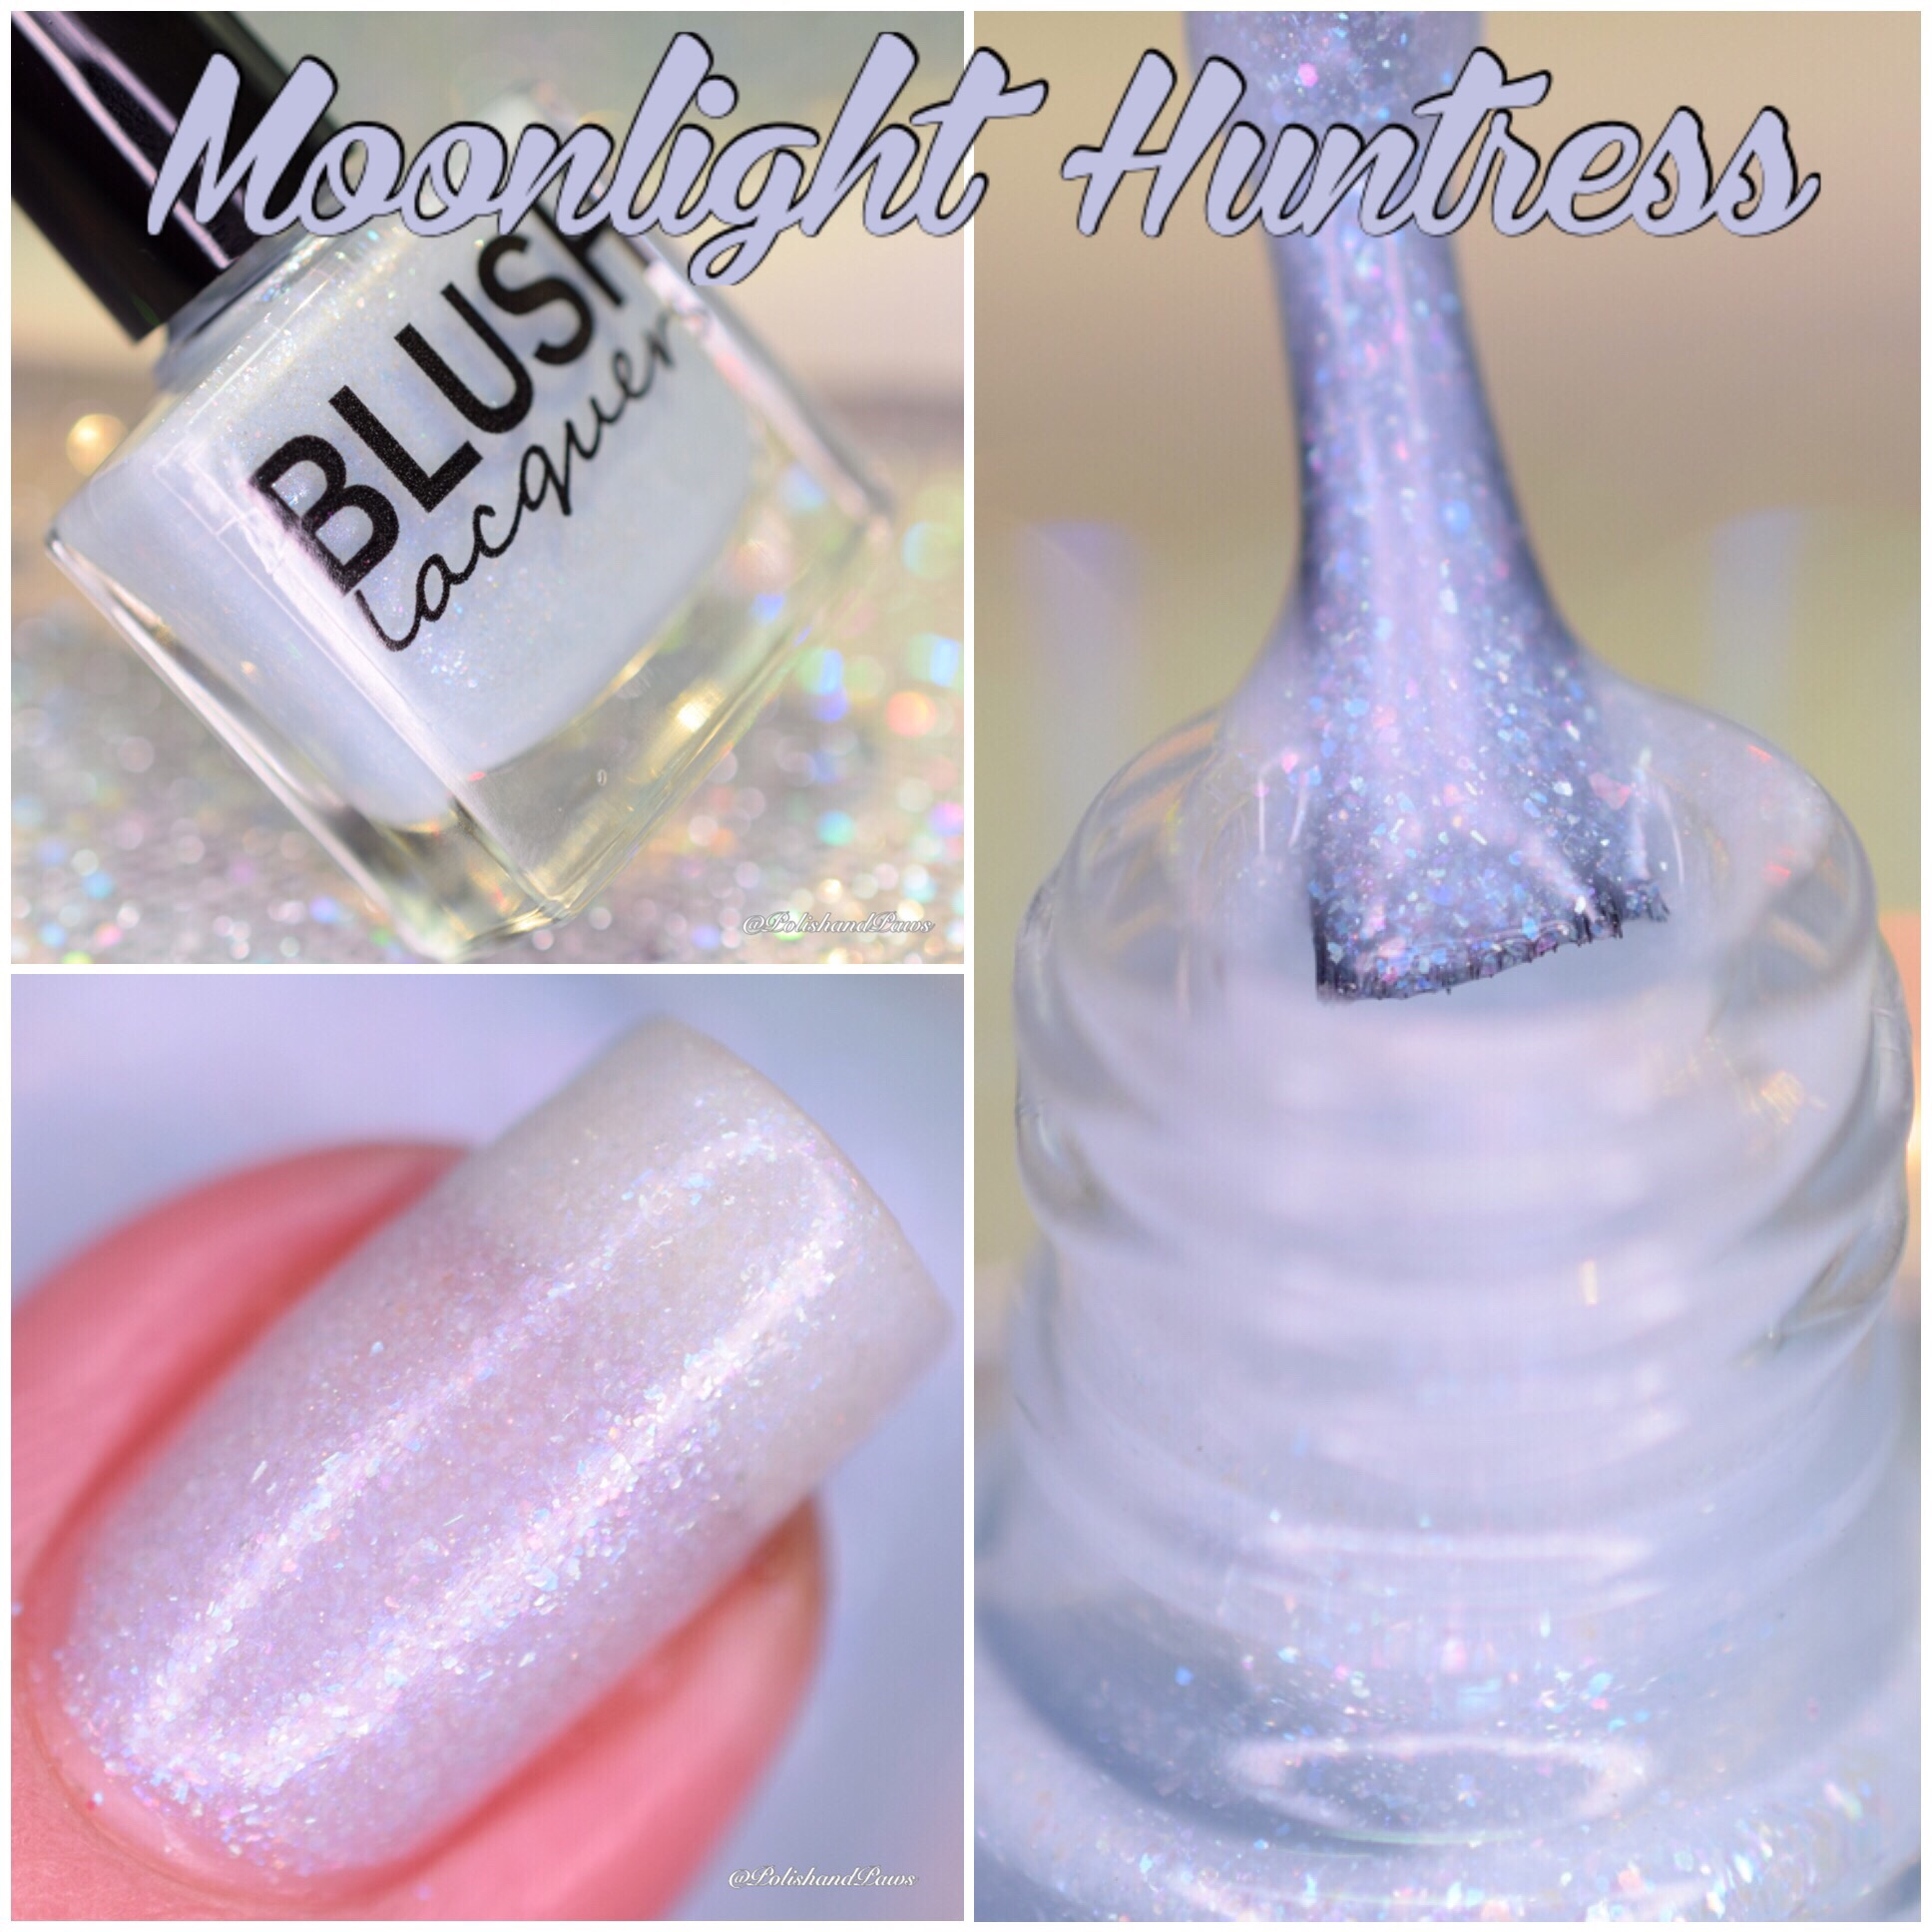 Blush Lacquer Moonlight Huntress